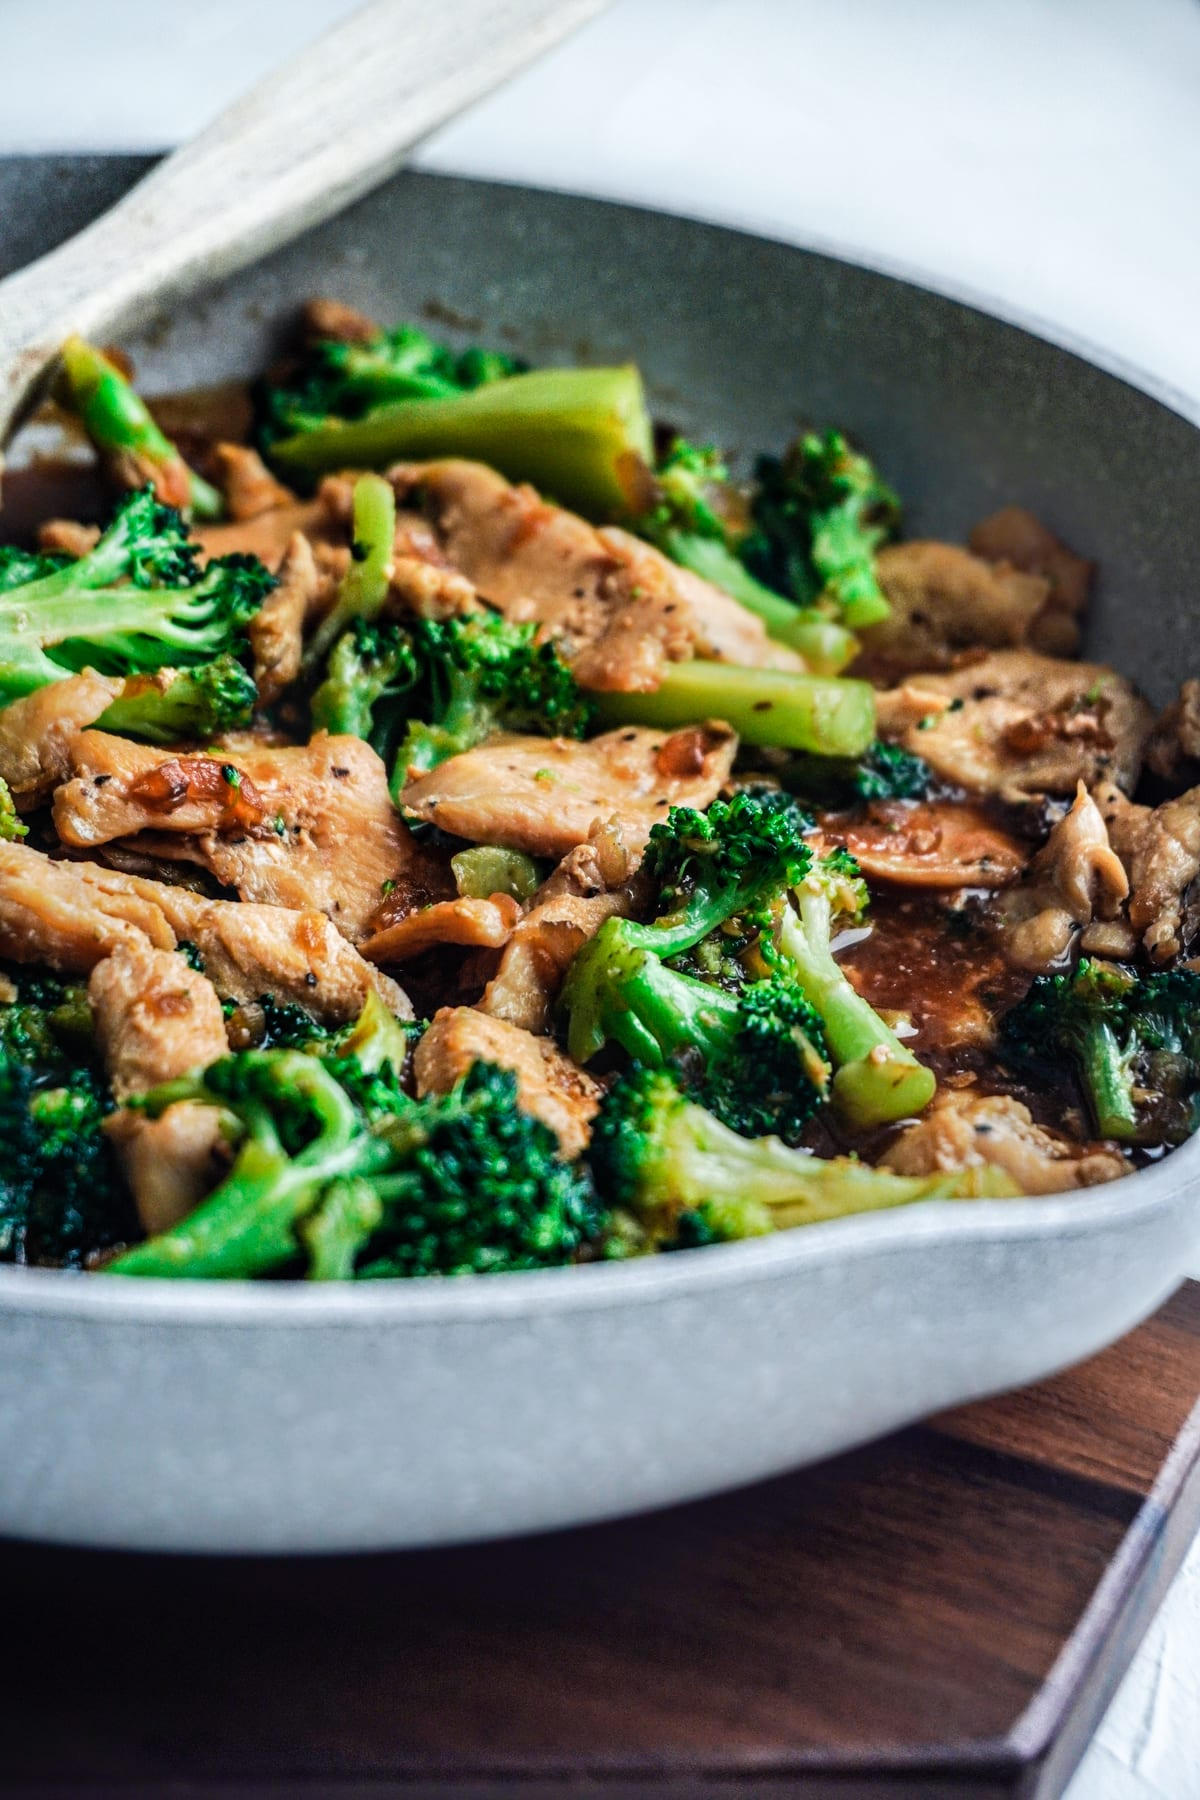 A pan of Chinese chicken and broccoli